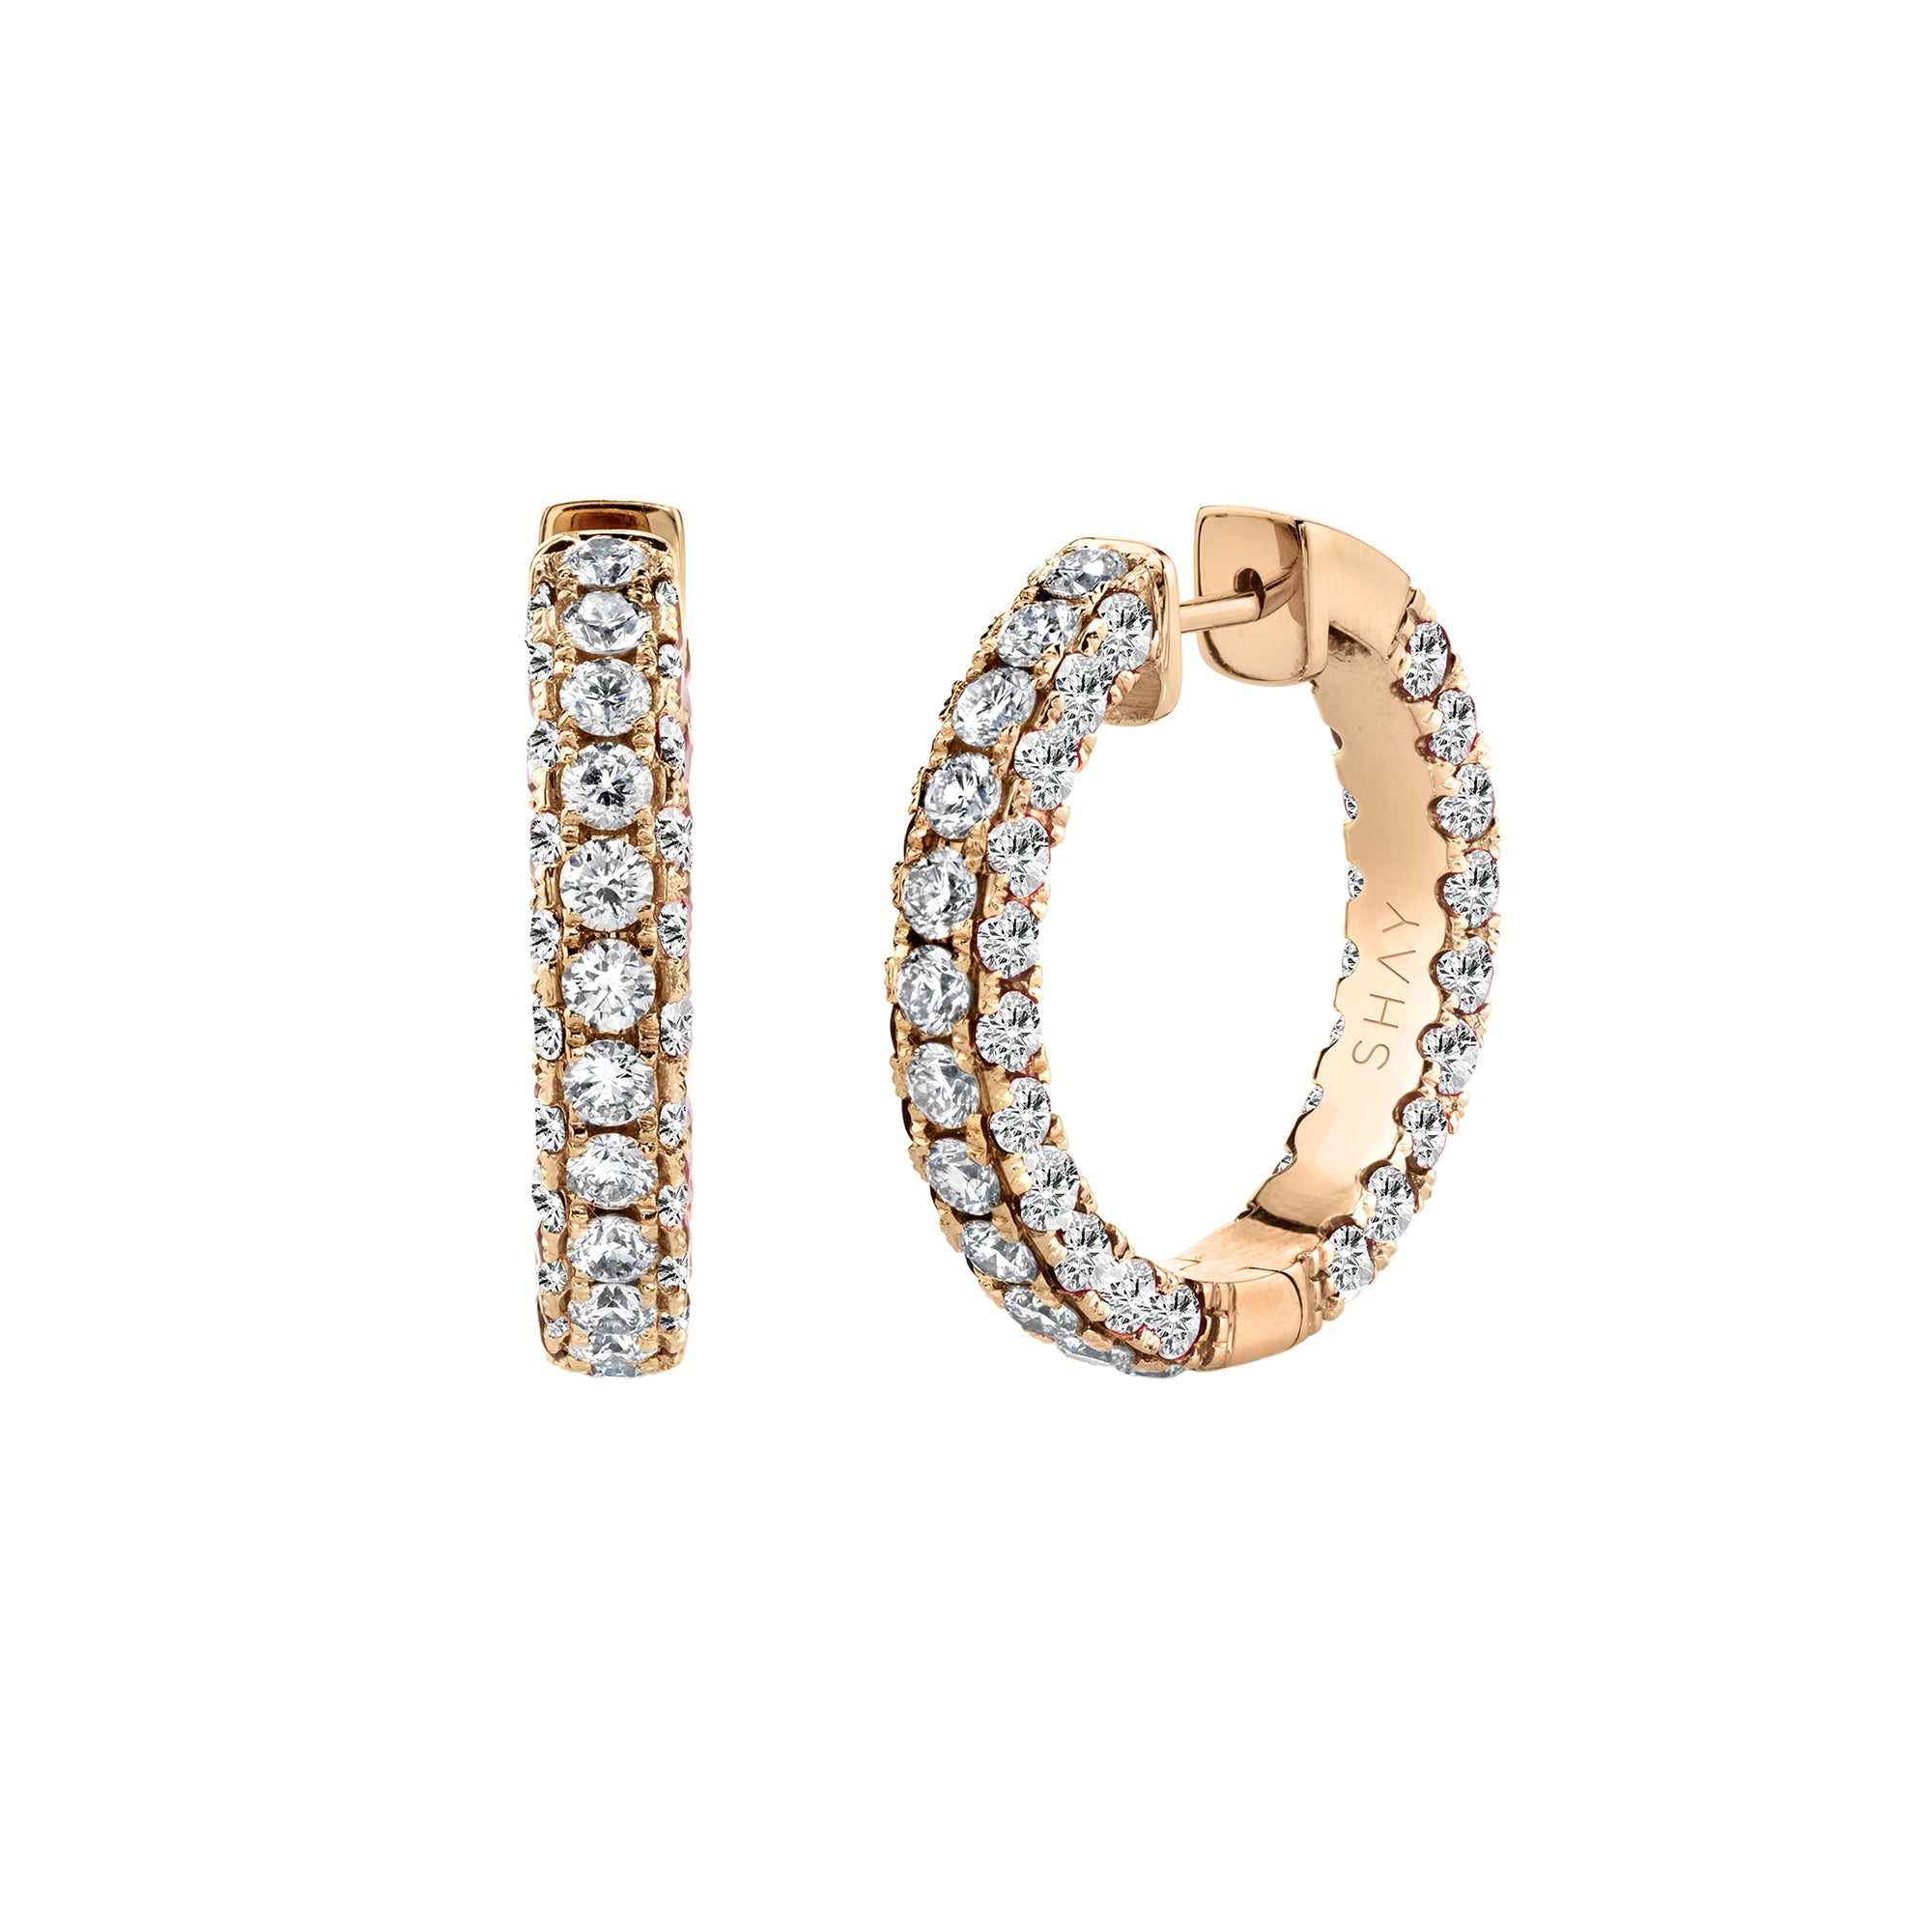 Shay 3 Sided Diamond Hoops - Rose Gold - Earrings - Broken English Jewelry